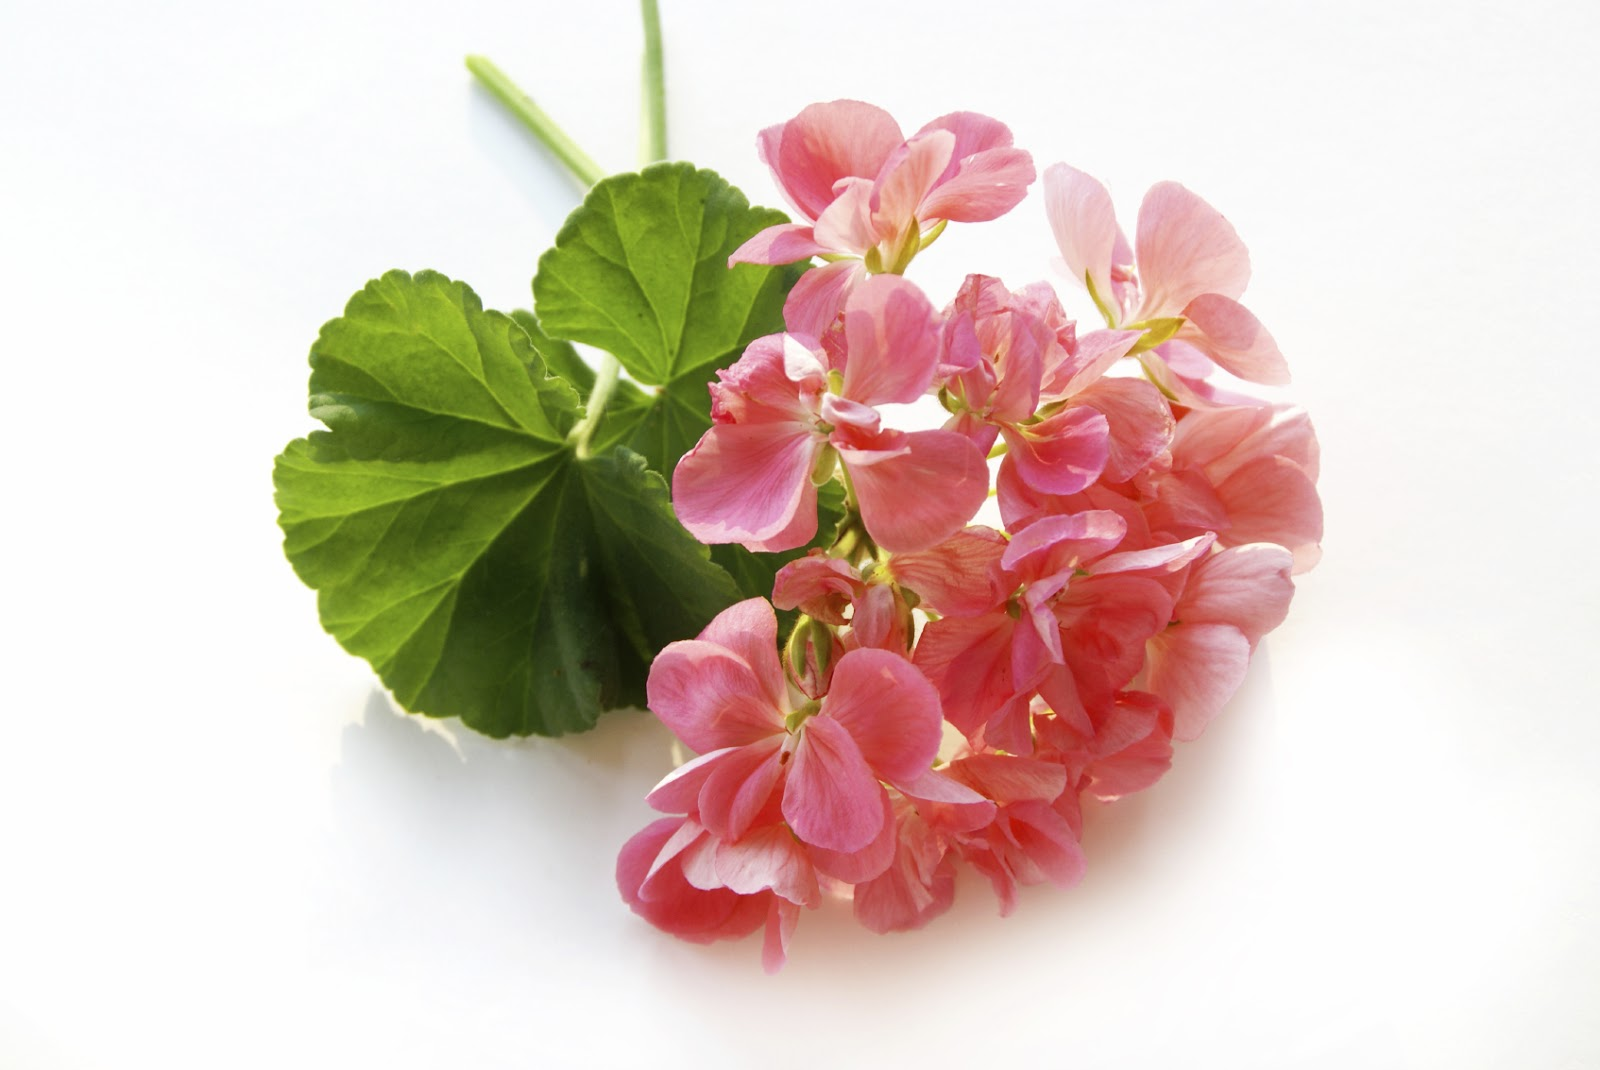 You will learn to immediately recognize the distinctive, one-of-a-kind aroma of Organic Rose Geranium Essential Oil.